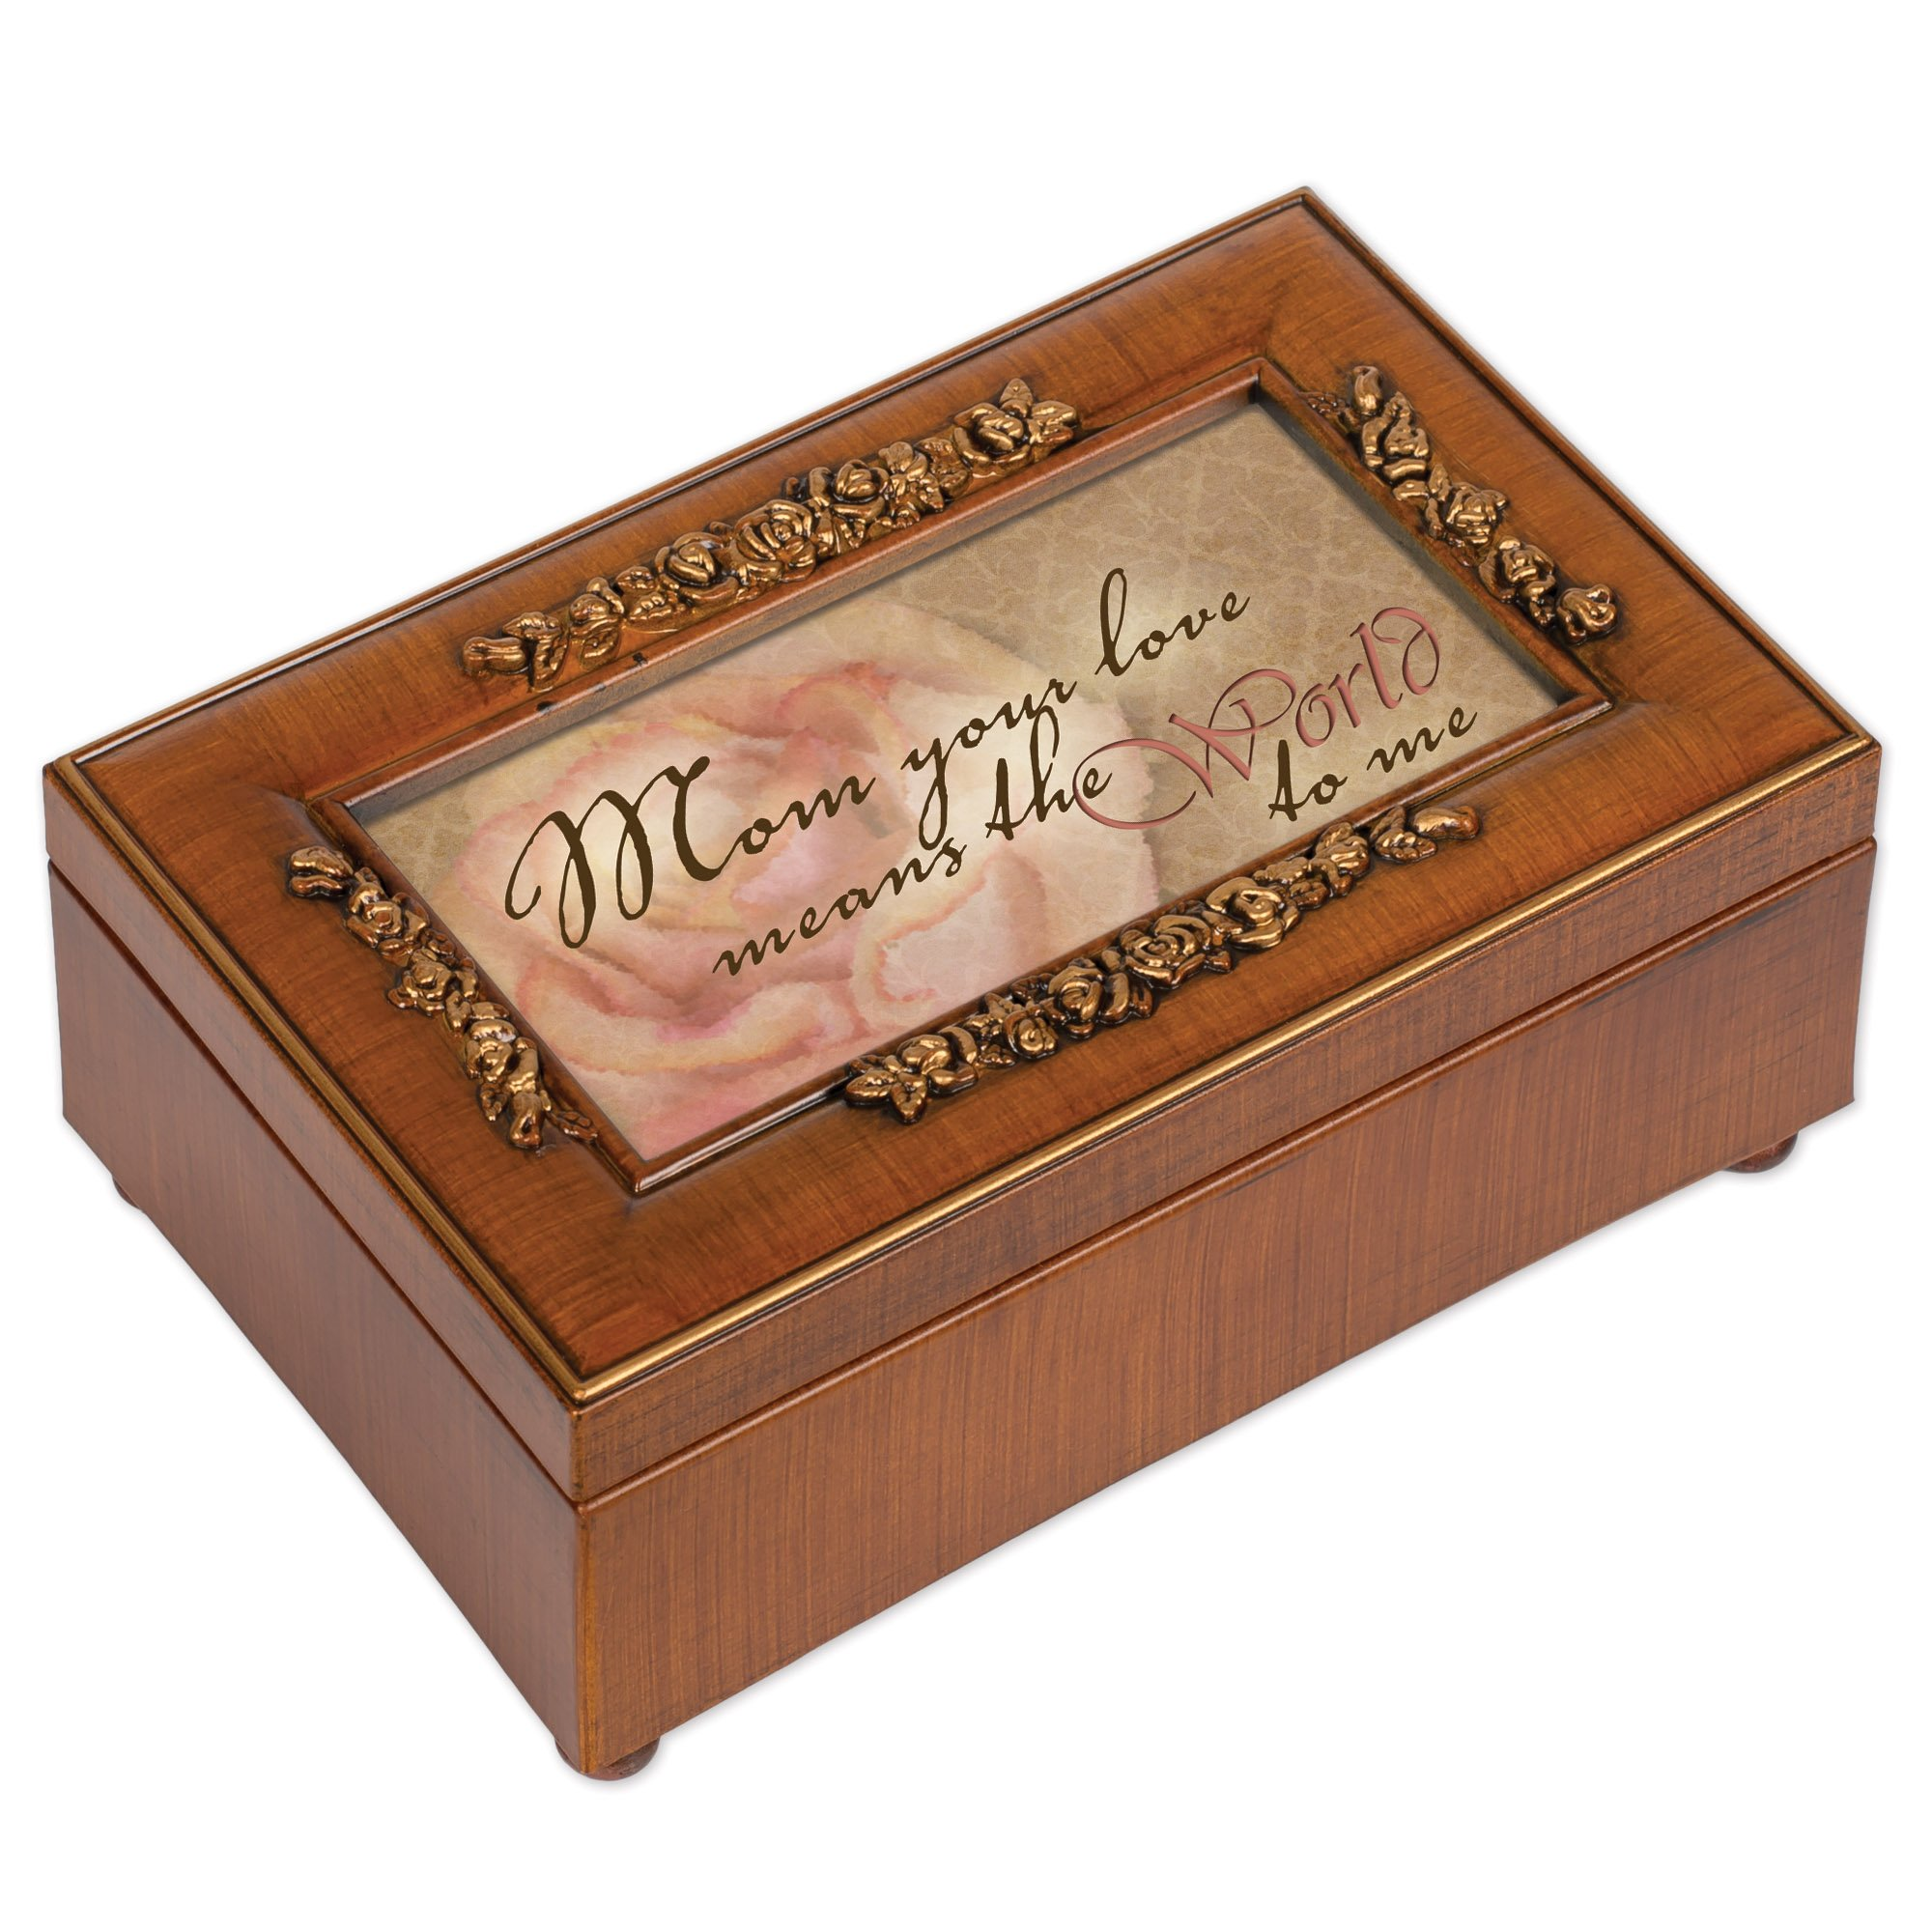 Mom Your Love Wood Finish Rose Jewelry Music Box - Plays Tune Wind Beneath My Wings by Cottage Garden (Image #1)